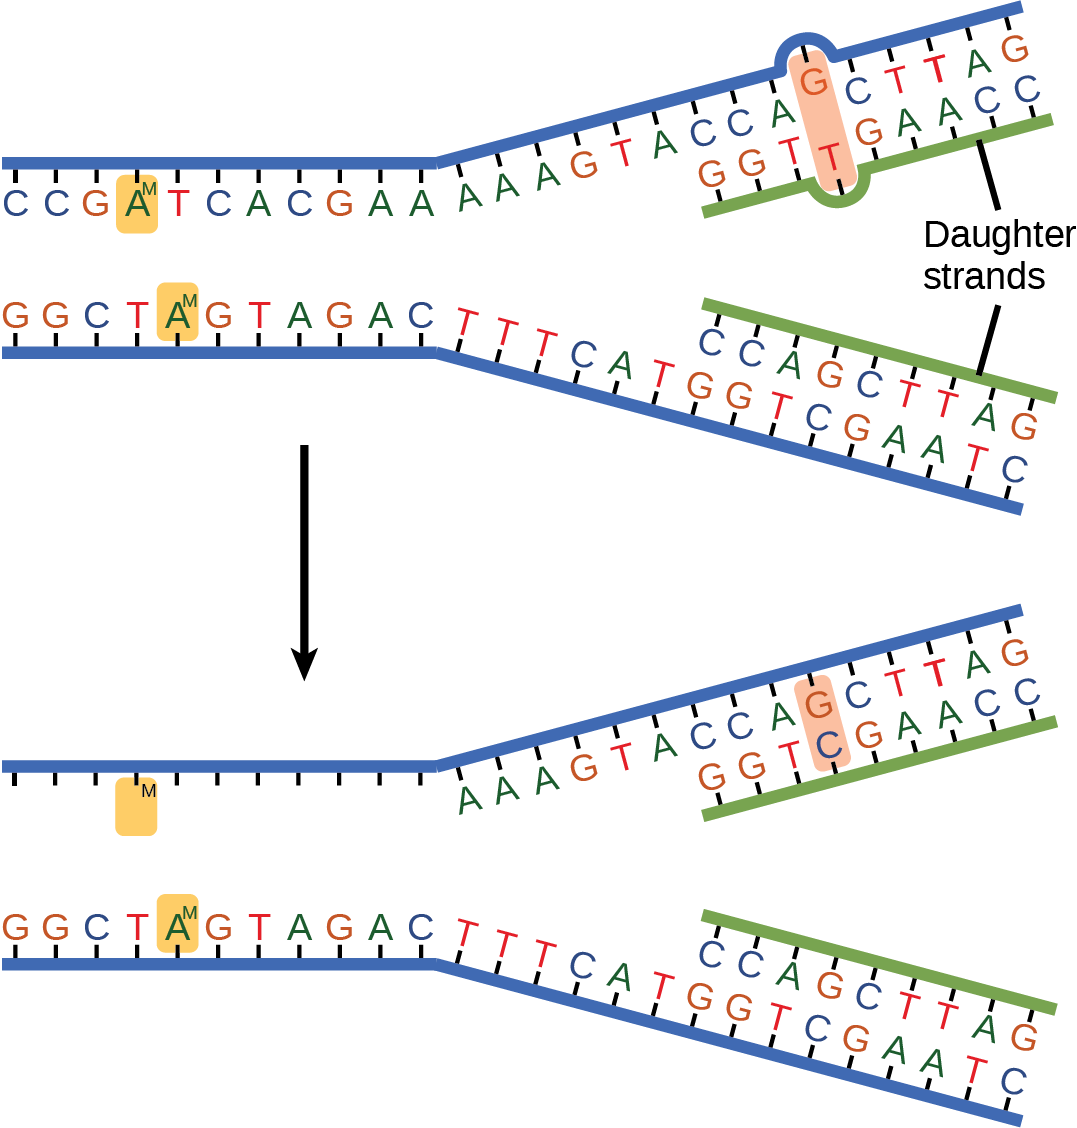 The top illustration shows a replicated D N A strand with G T base mismatch. The bottom illustration shows the repaired D N A, which has the correct G C base pairing.